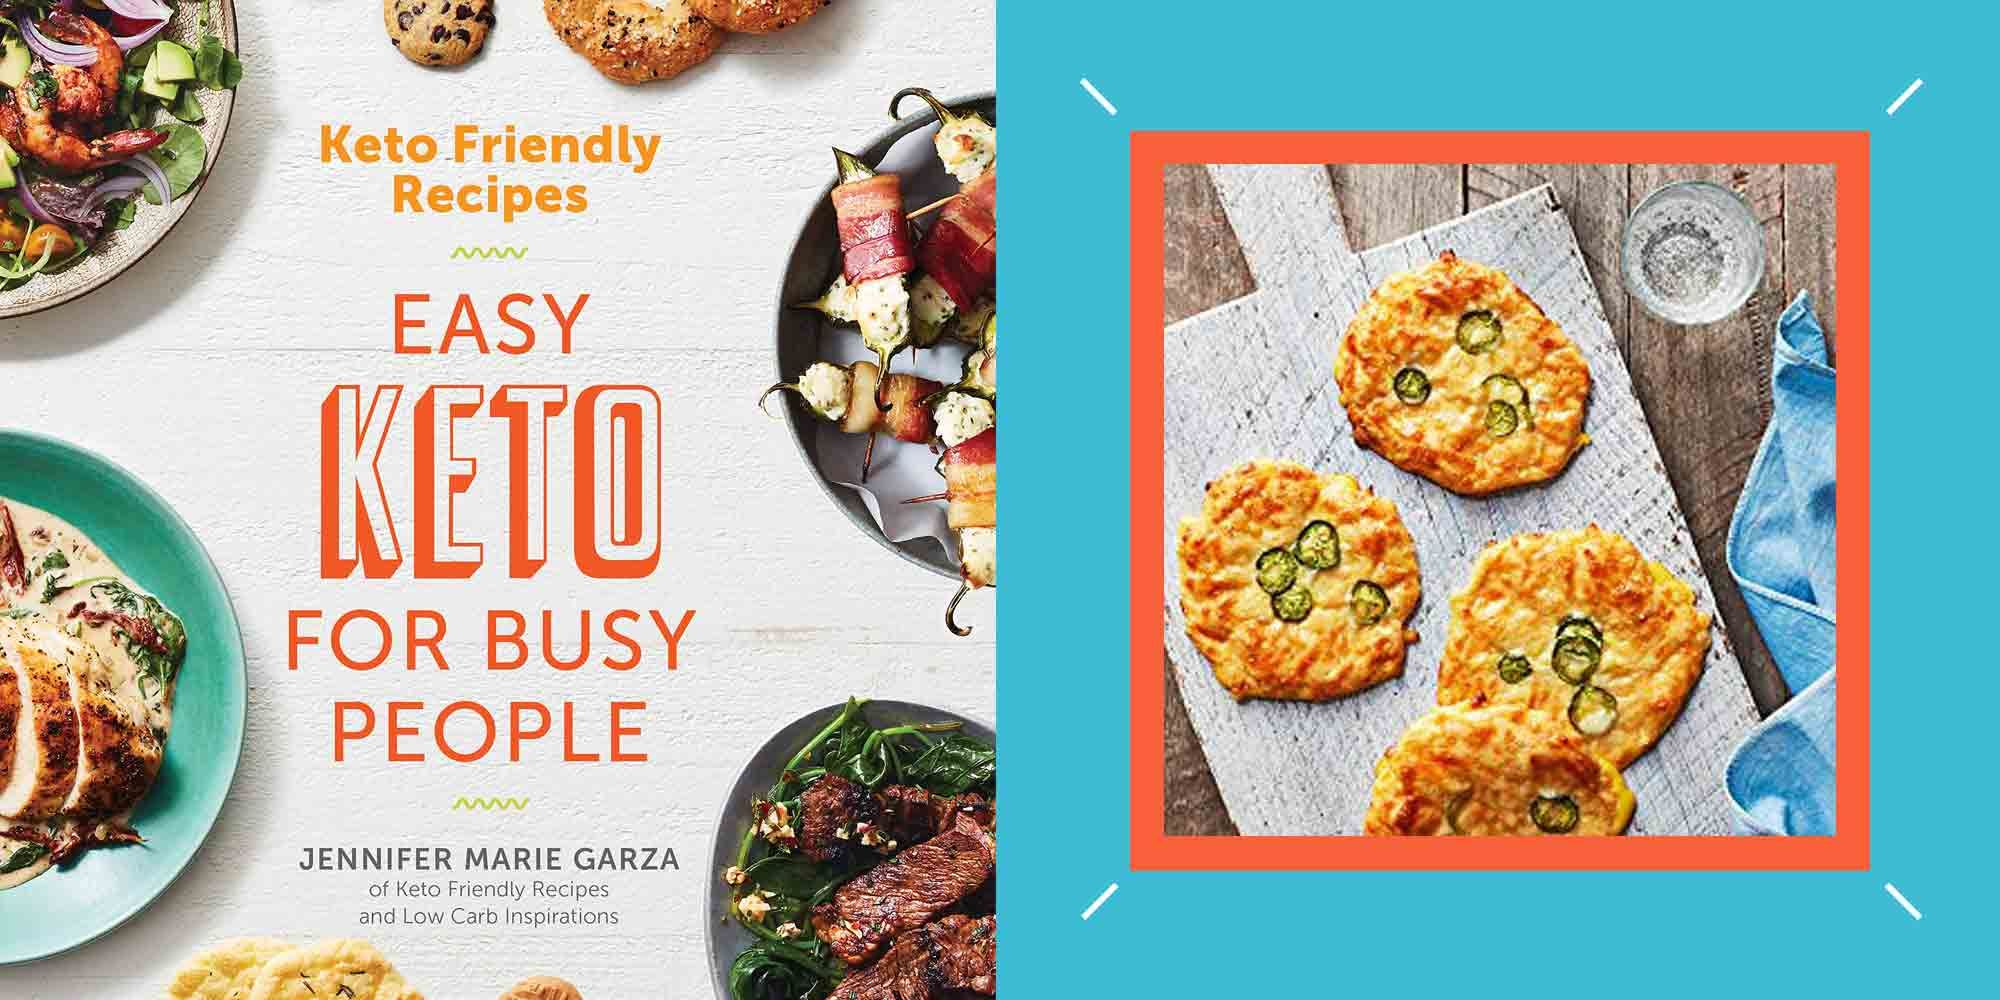 The 'Easy Keto For Busy People' Cookbook Makes The Diet Sustainable When Life Gets Crazy